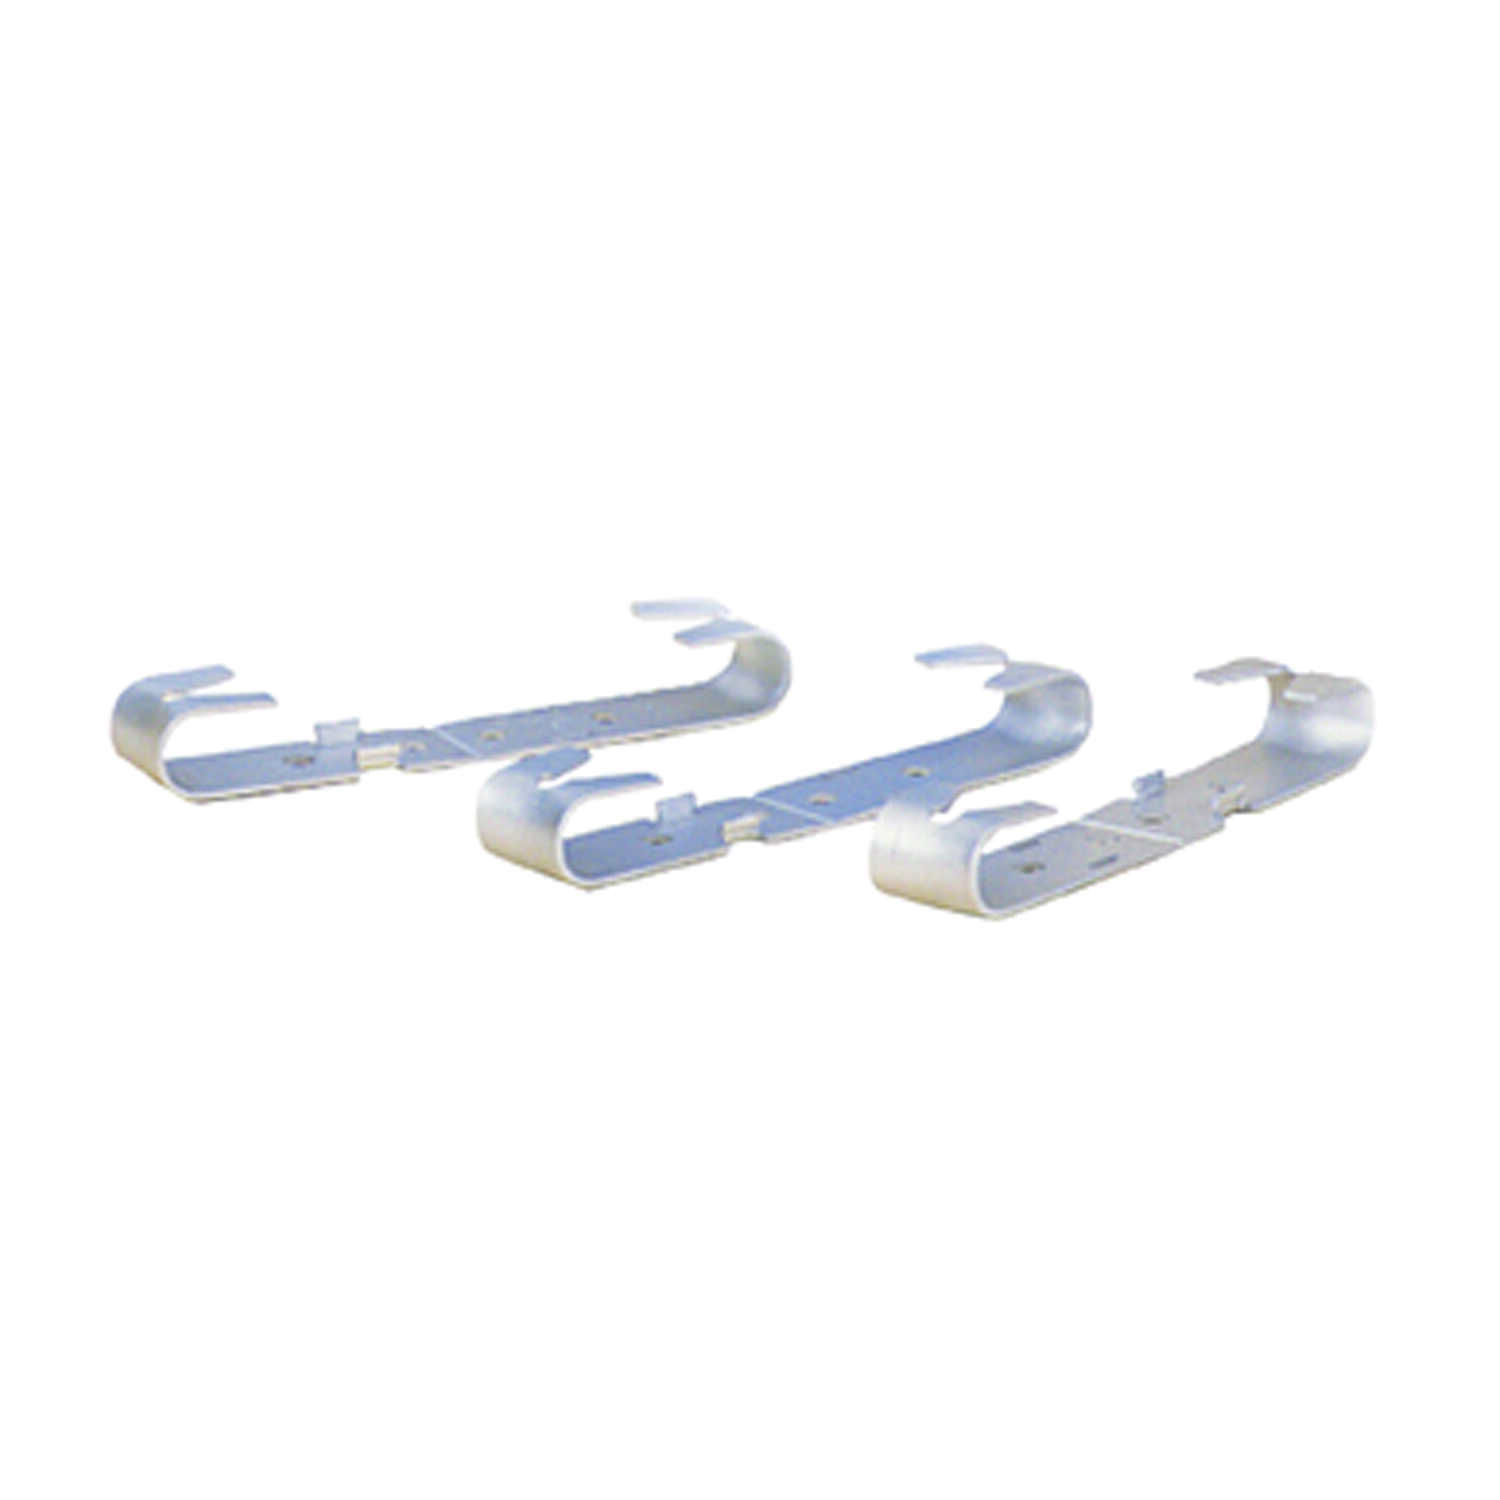 Easy Heat  SR TRACE  0 in. L De-Icing Cable Clips  For Roof